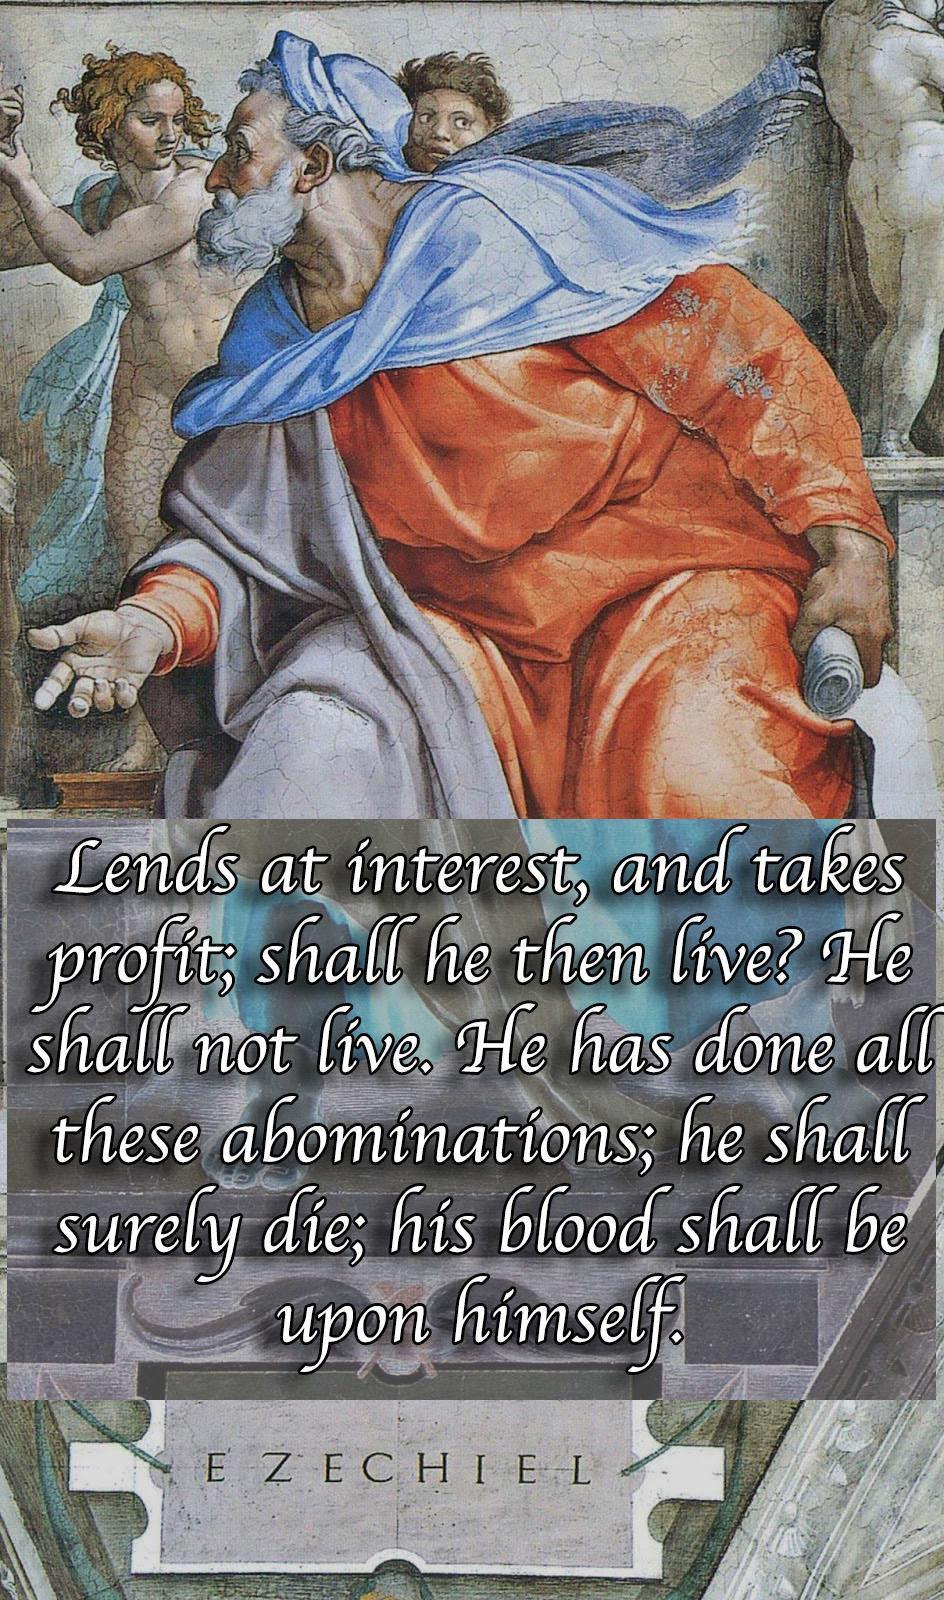 """Lends at interest, and takes profit; shall he then live? He shall not live. He has done all these abominations; he shall surely die; his blood shall be upon himself."" – Ezekiel [OC][944 × 1600]"